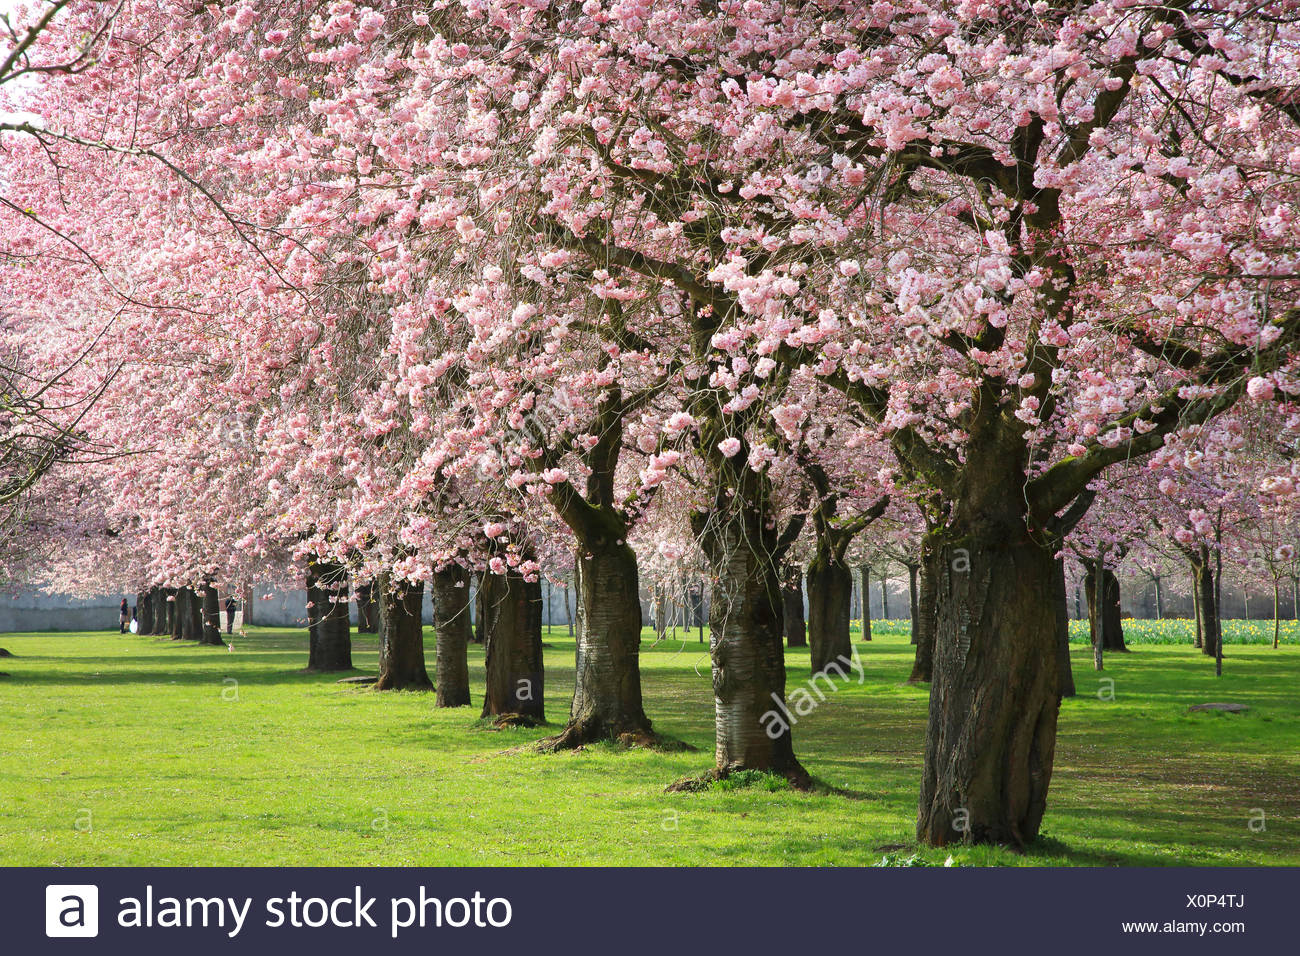 oriental cherry (Prunus serrulata), flowering oriental cherry alley at Schwetzingen Palace, Germany, Baden-Wuerttemberg - Stock Image